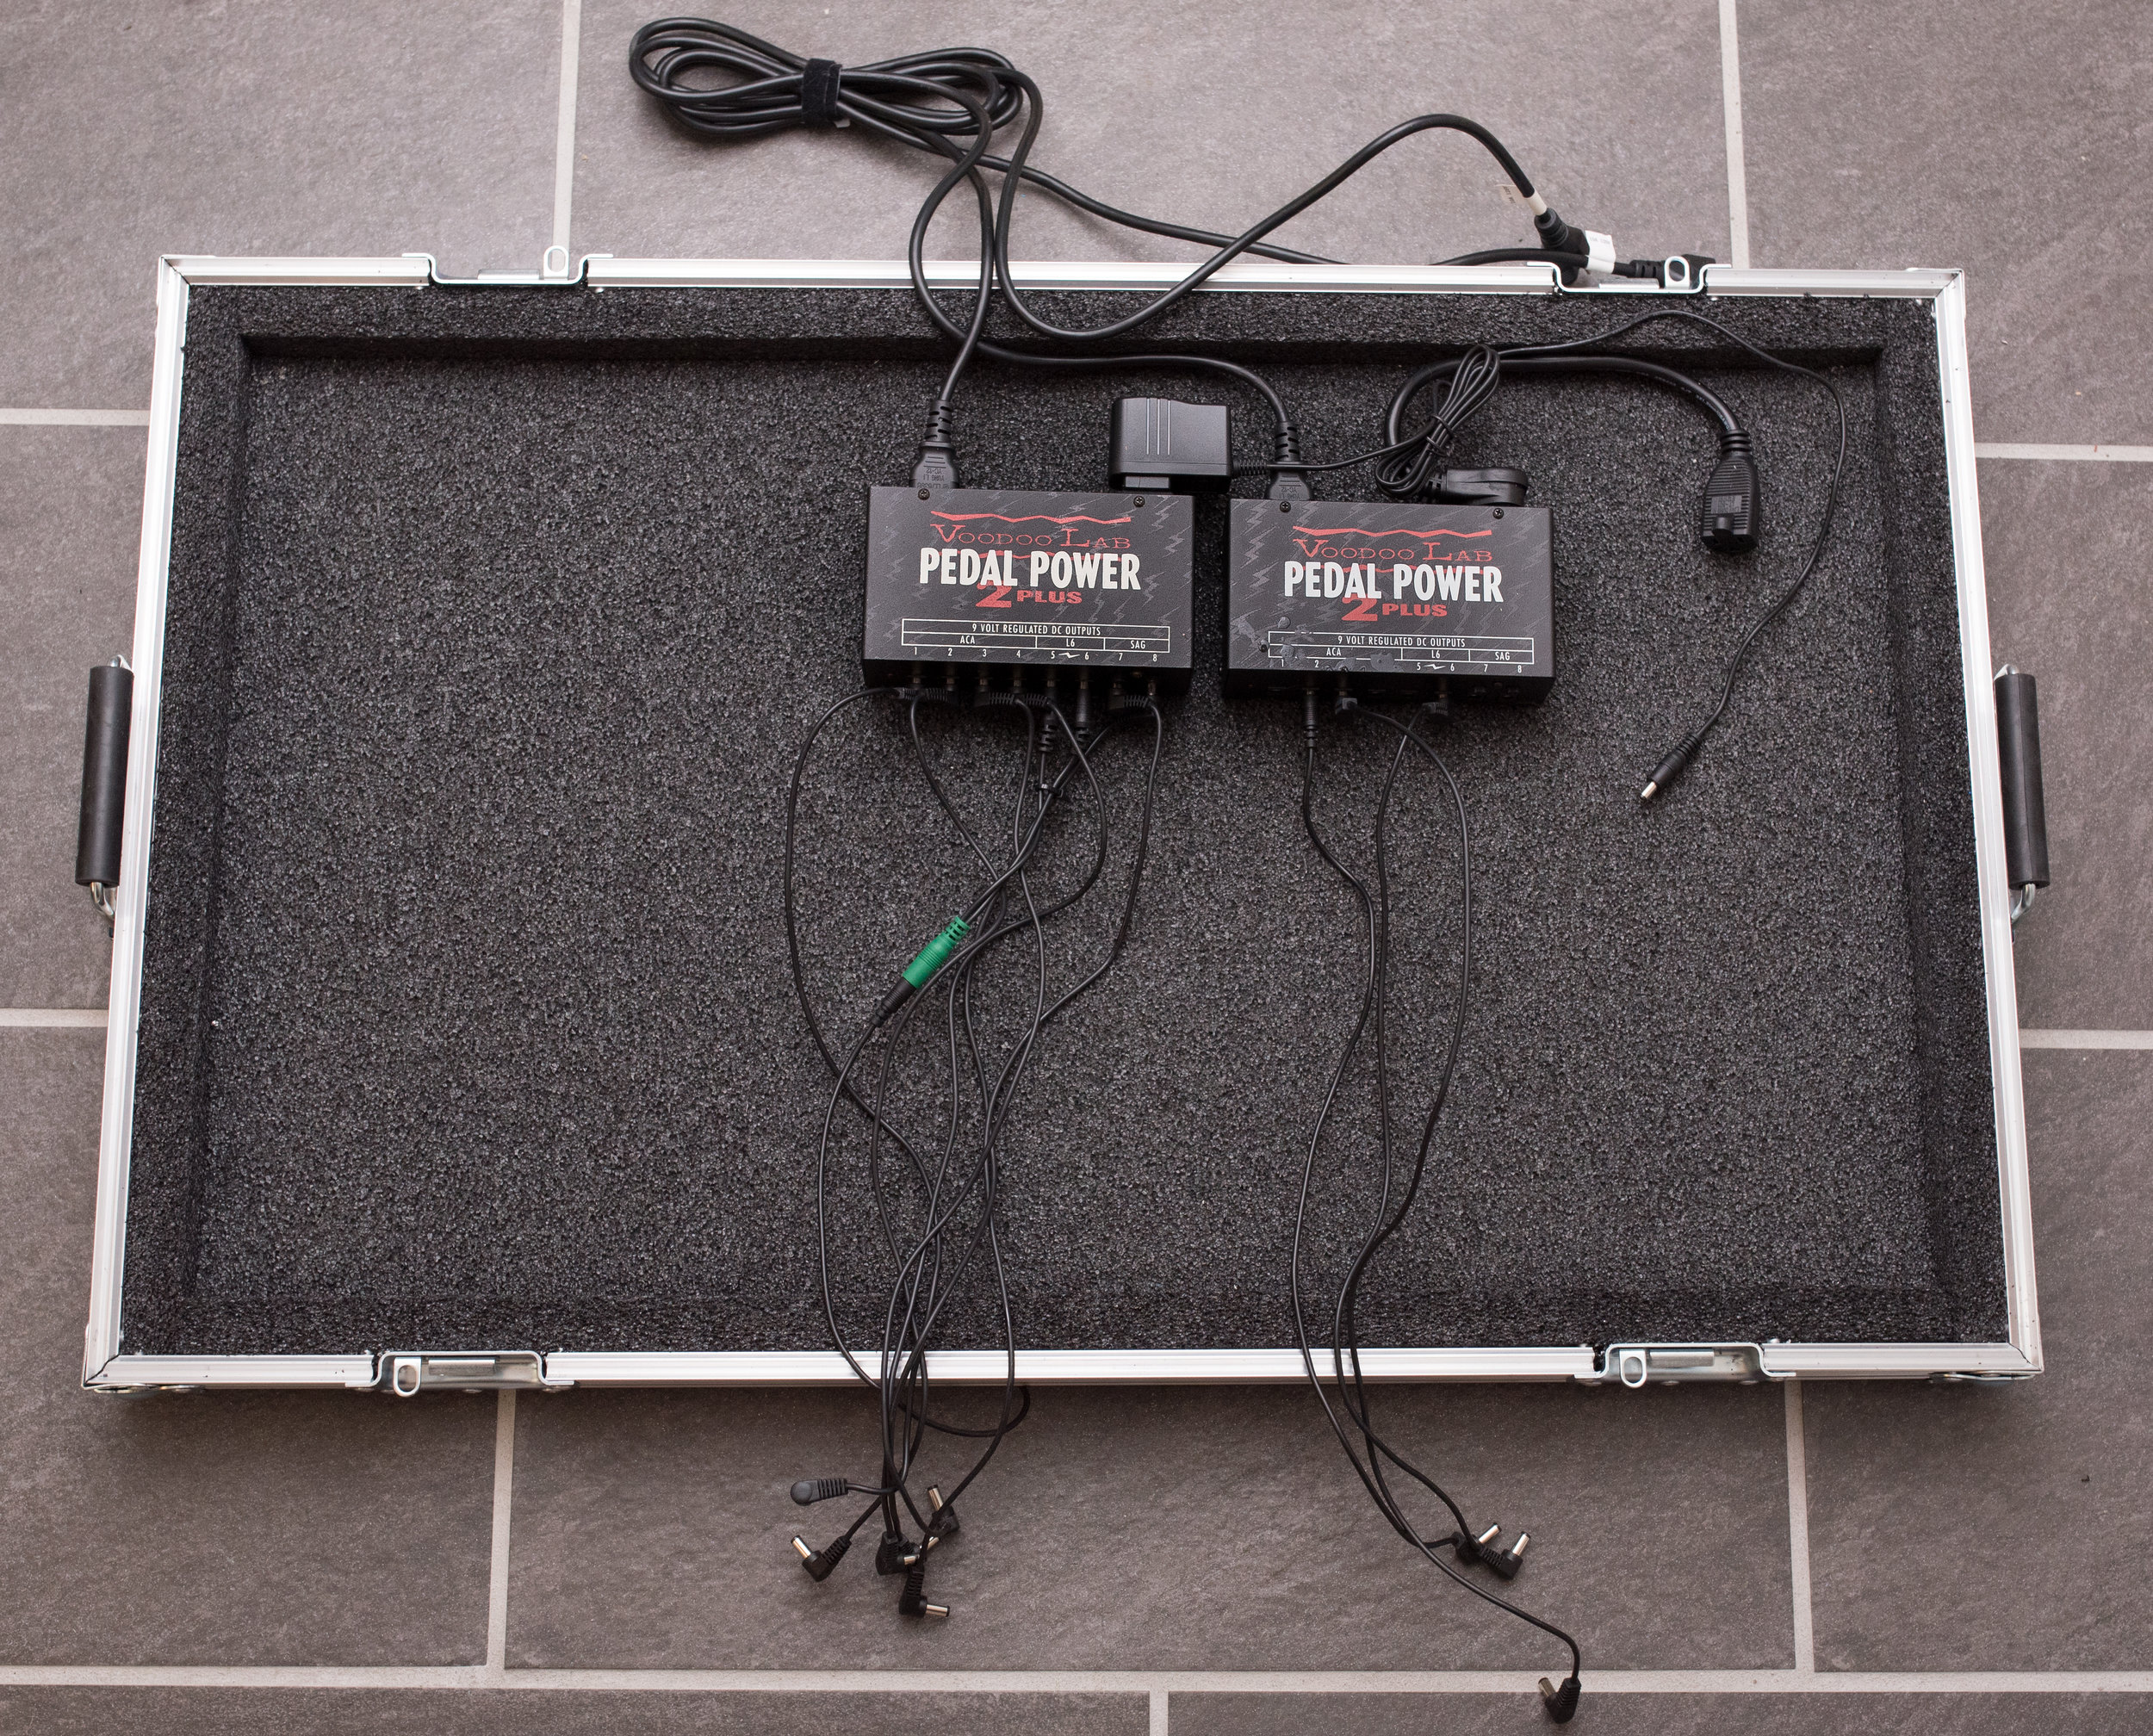 13. Place Power Supplies